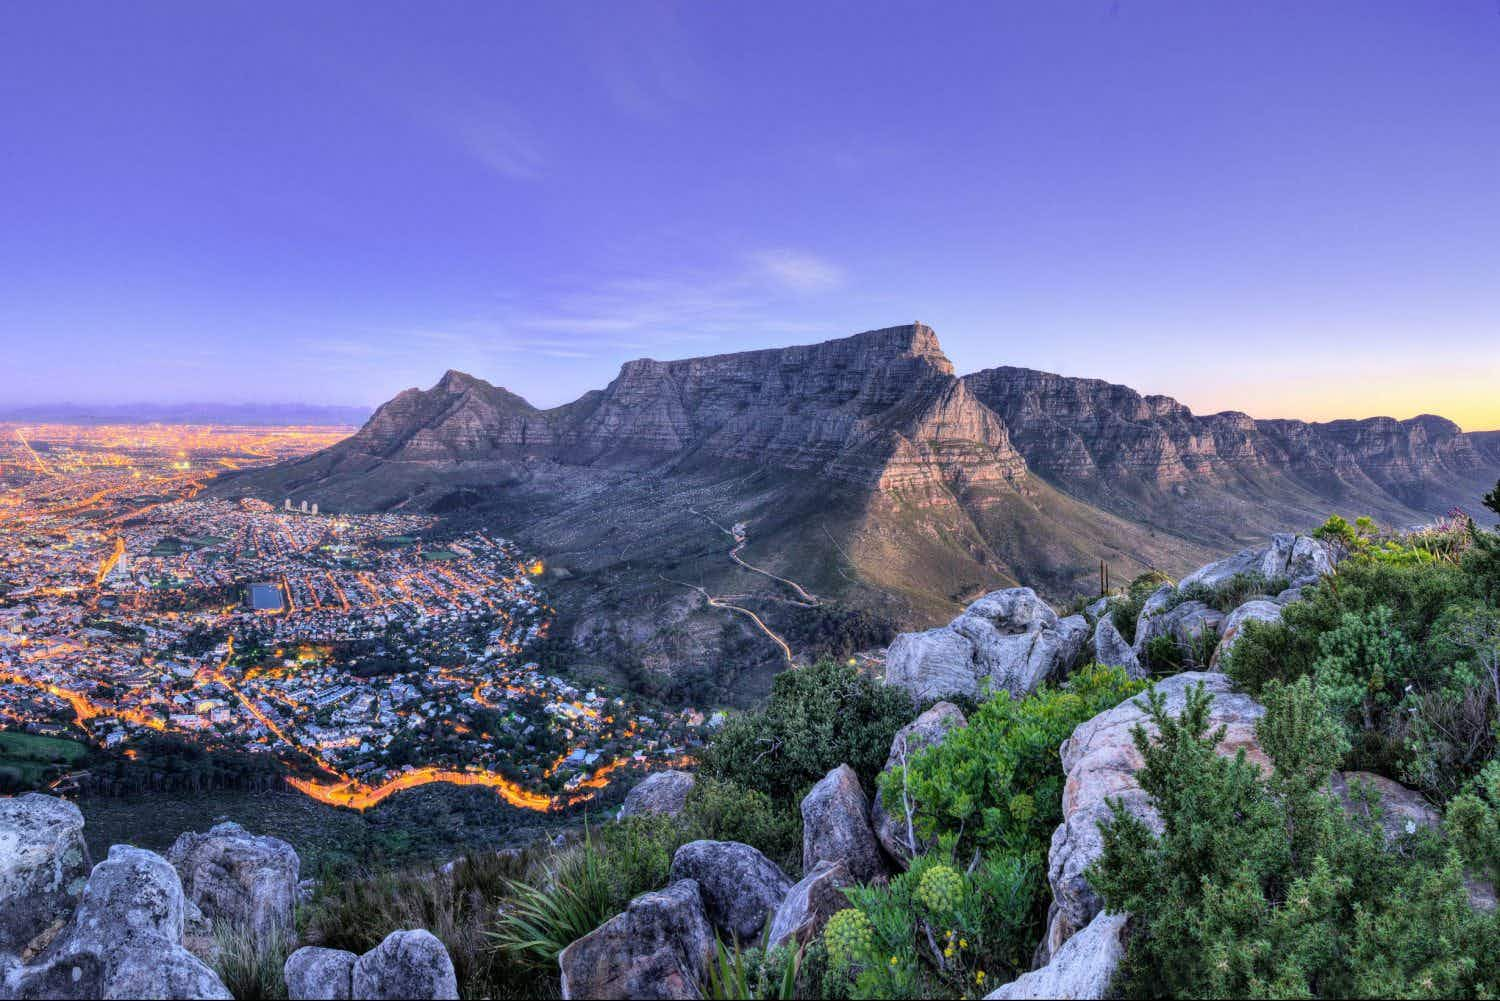 First direct flight to be launched between the US and Cape Town